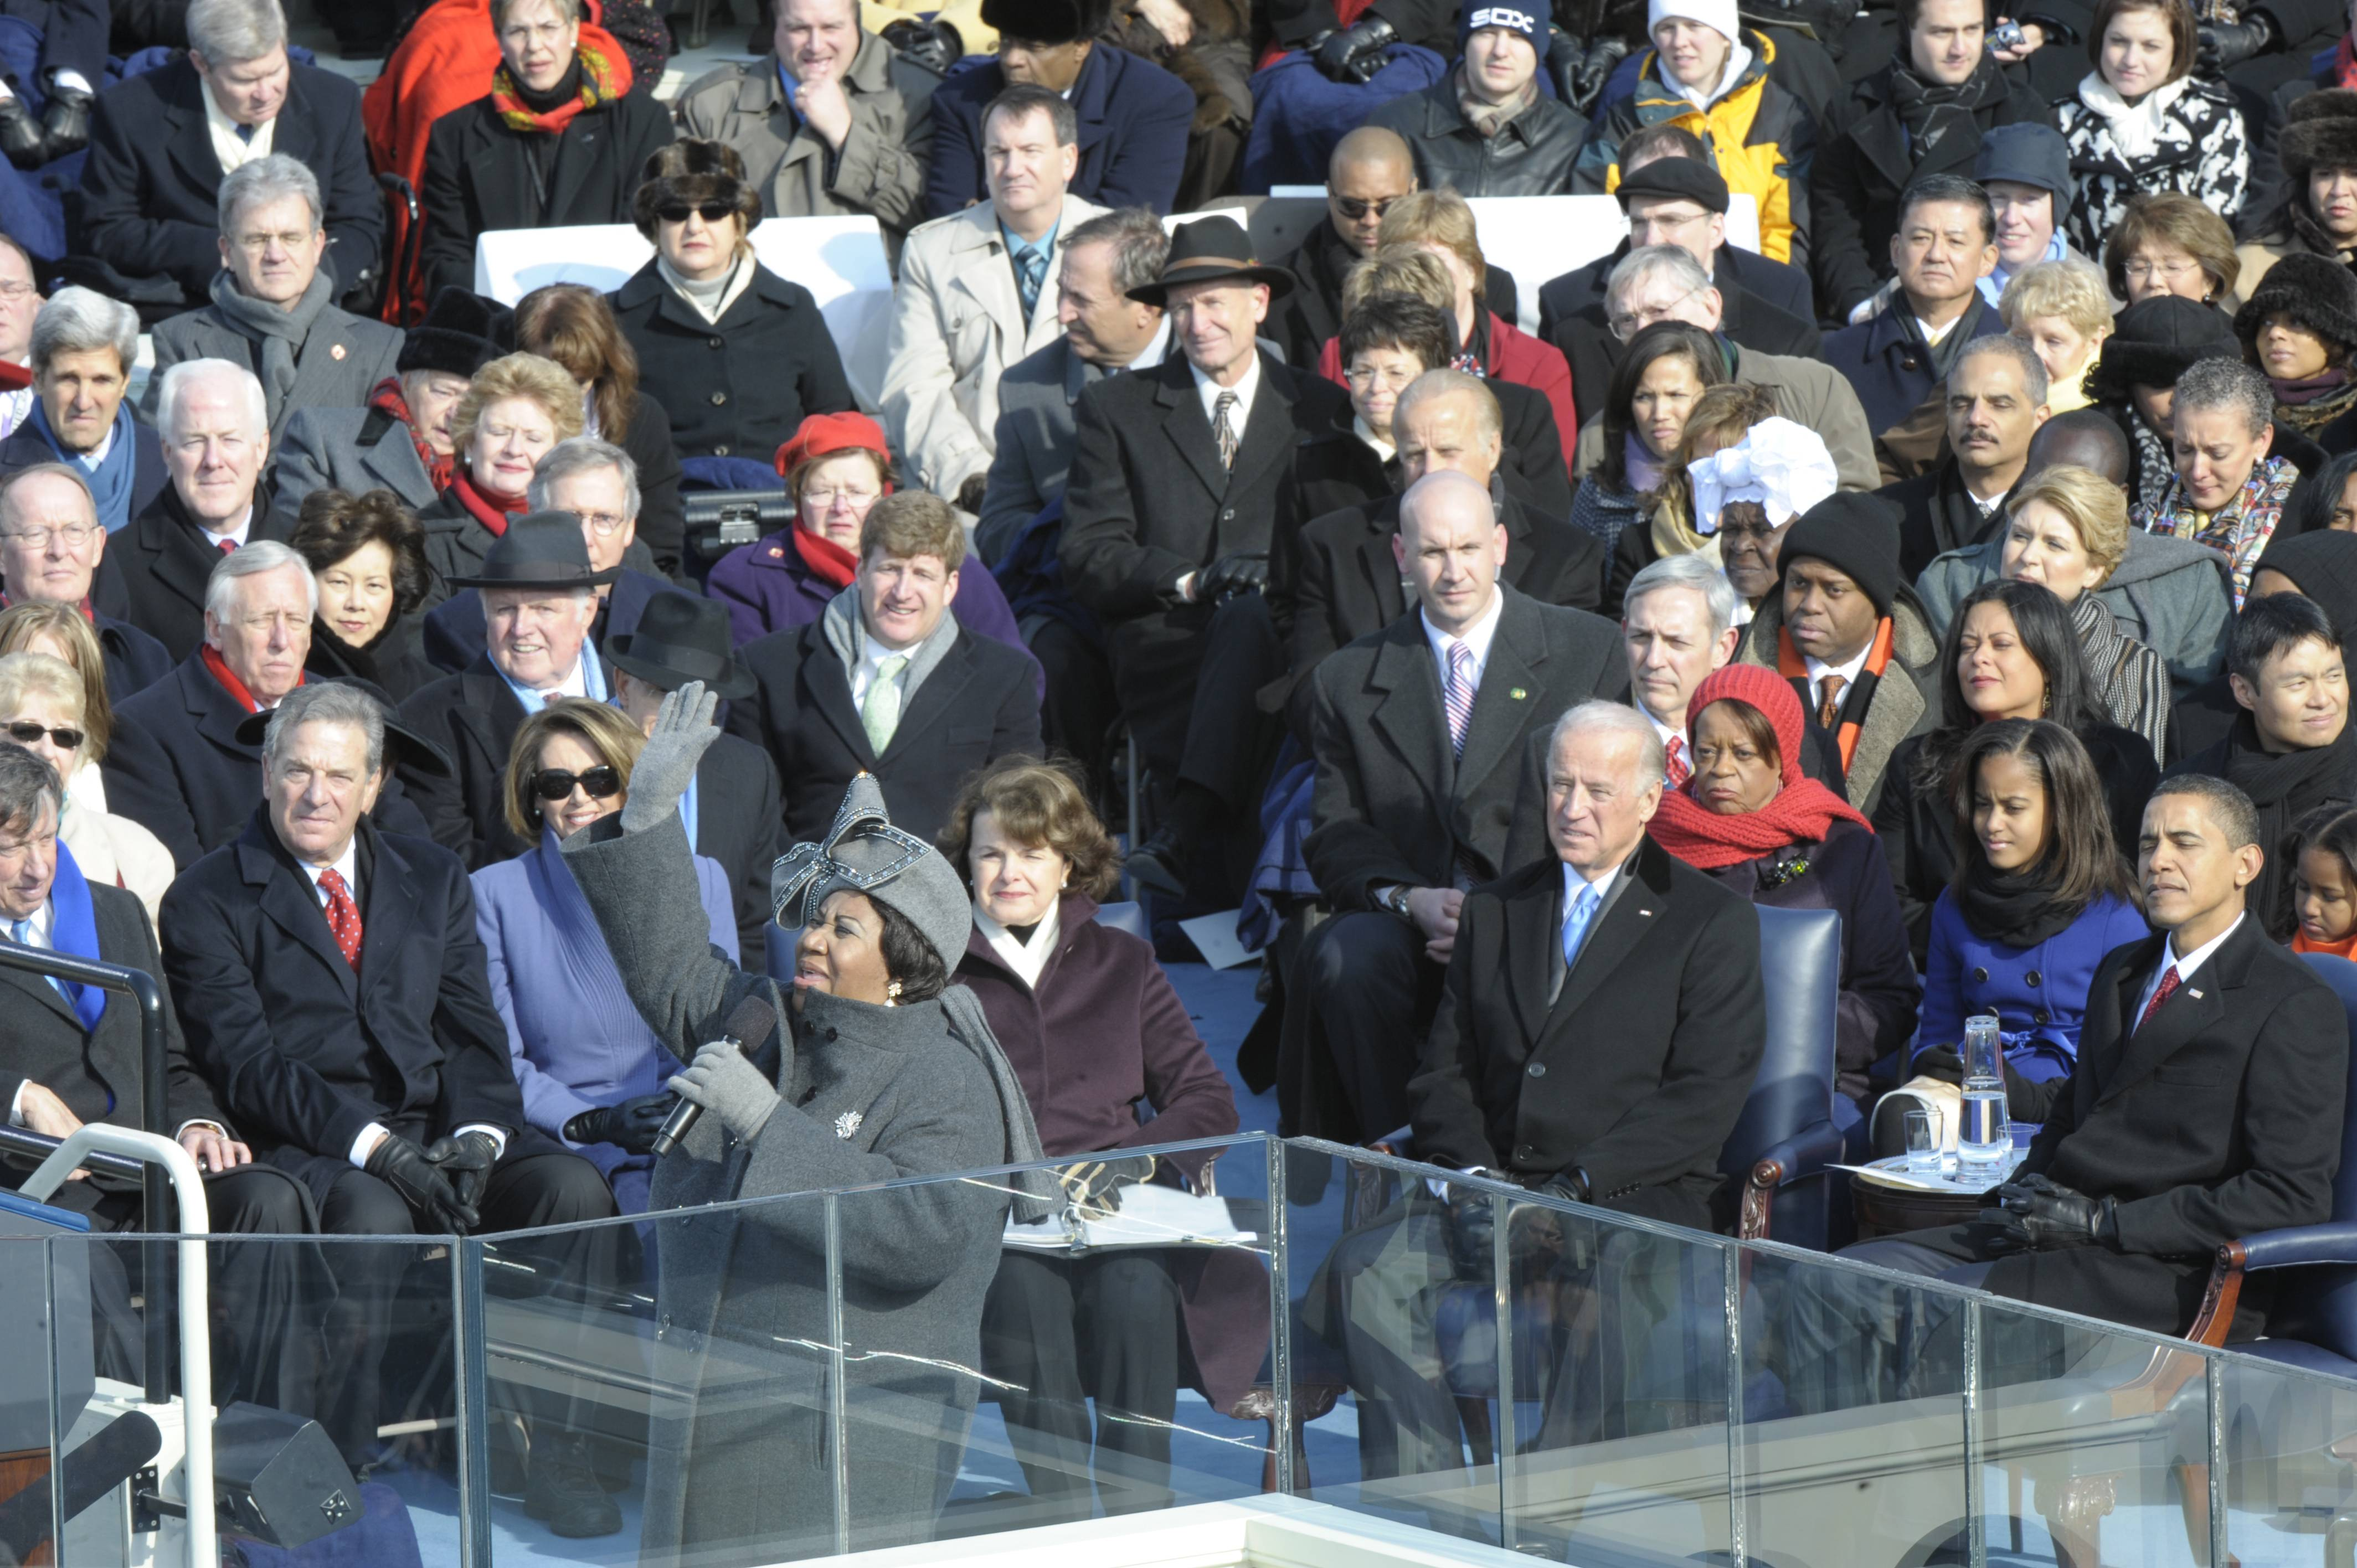 Aretha Franklin, front, in gray hat with hand raised, sings at Barack Obama's 2009 inauguration in Washington.